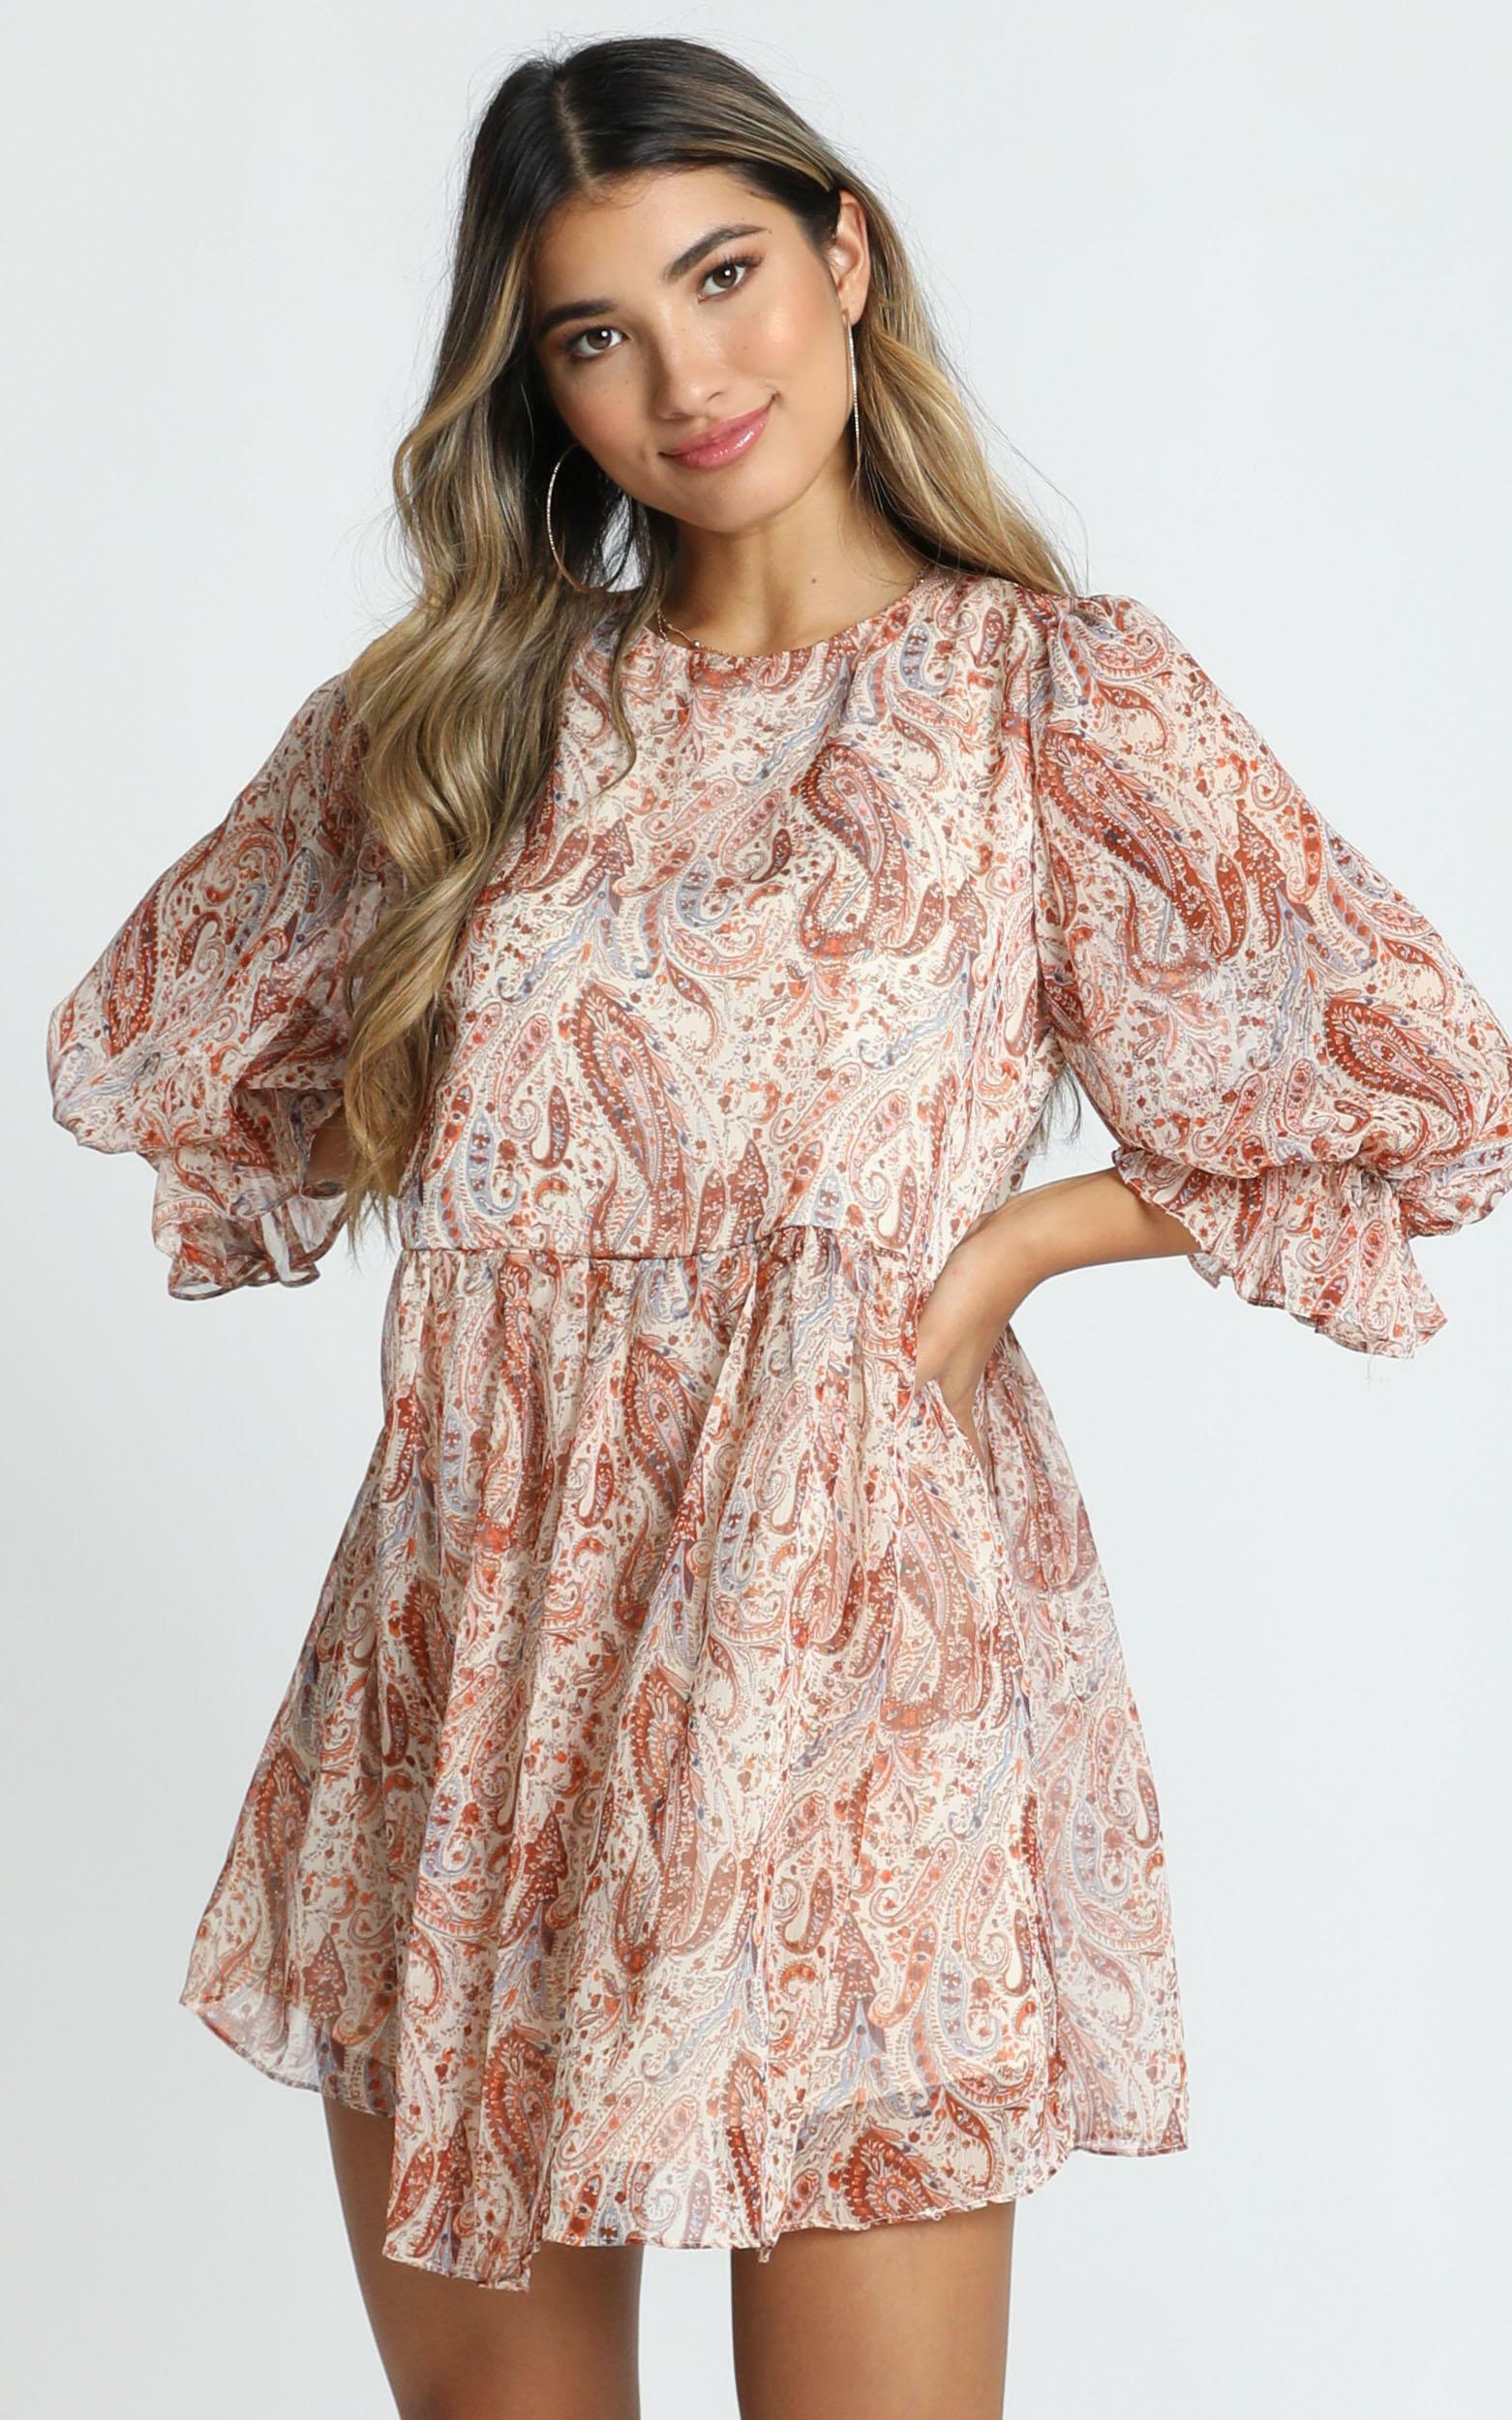 Oh My Days Mini Dress in rust paisley - 12 (L), Rust, hi-res image number null